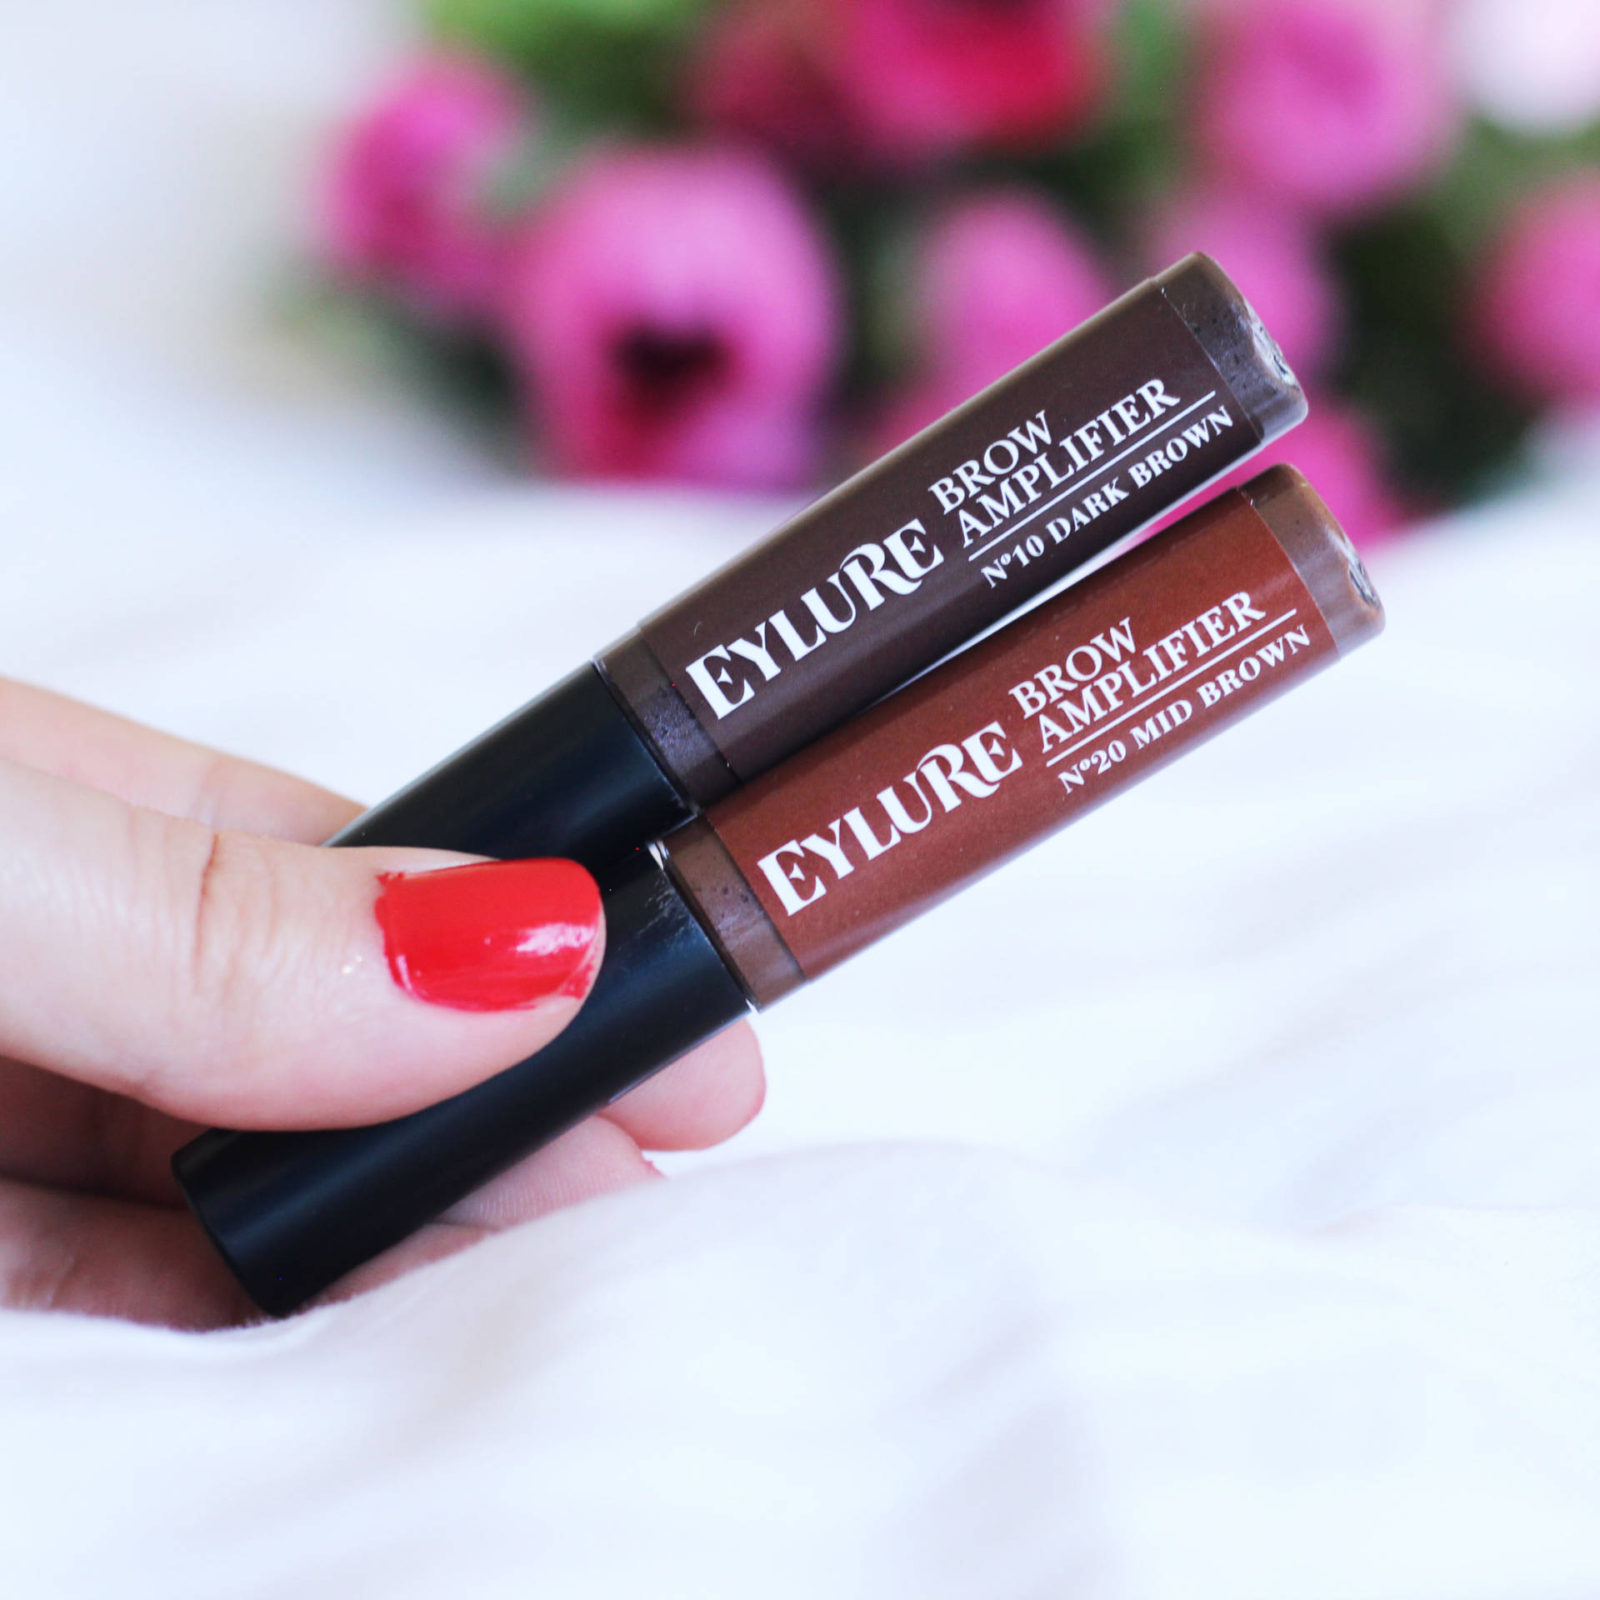 The 10 Second Brow | Eylure Brow Amplifier